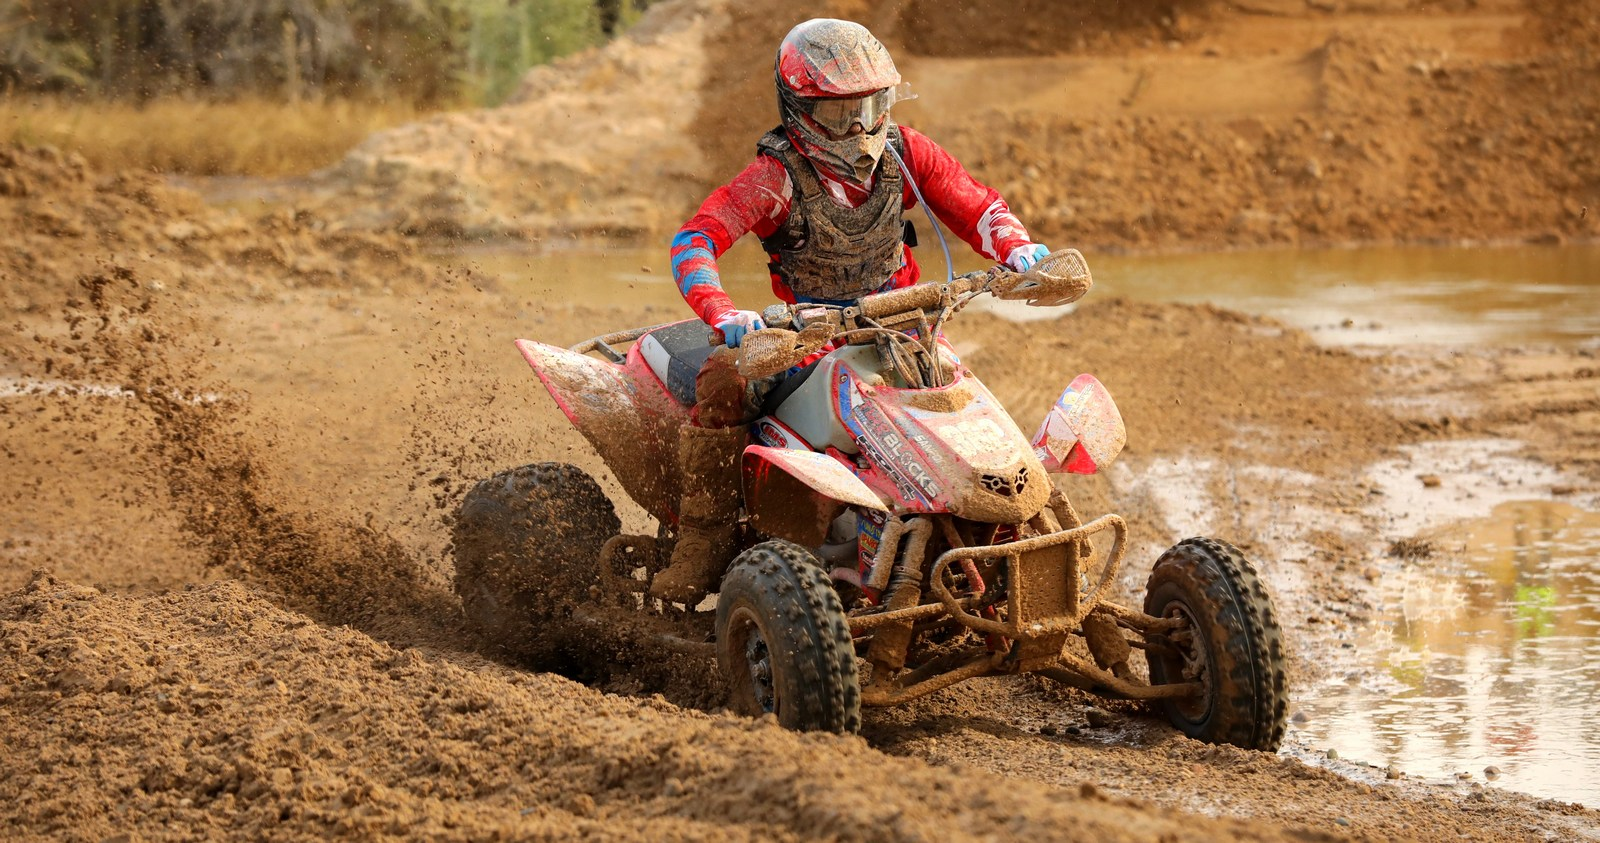 2019-02-kenny-sanford-atv-worcs-racing